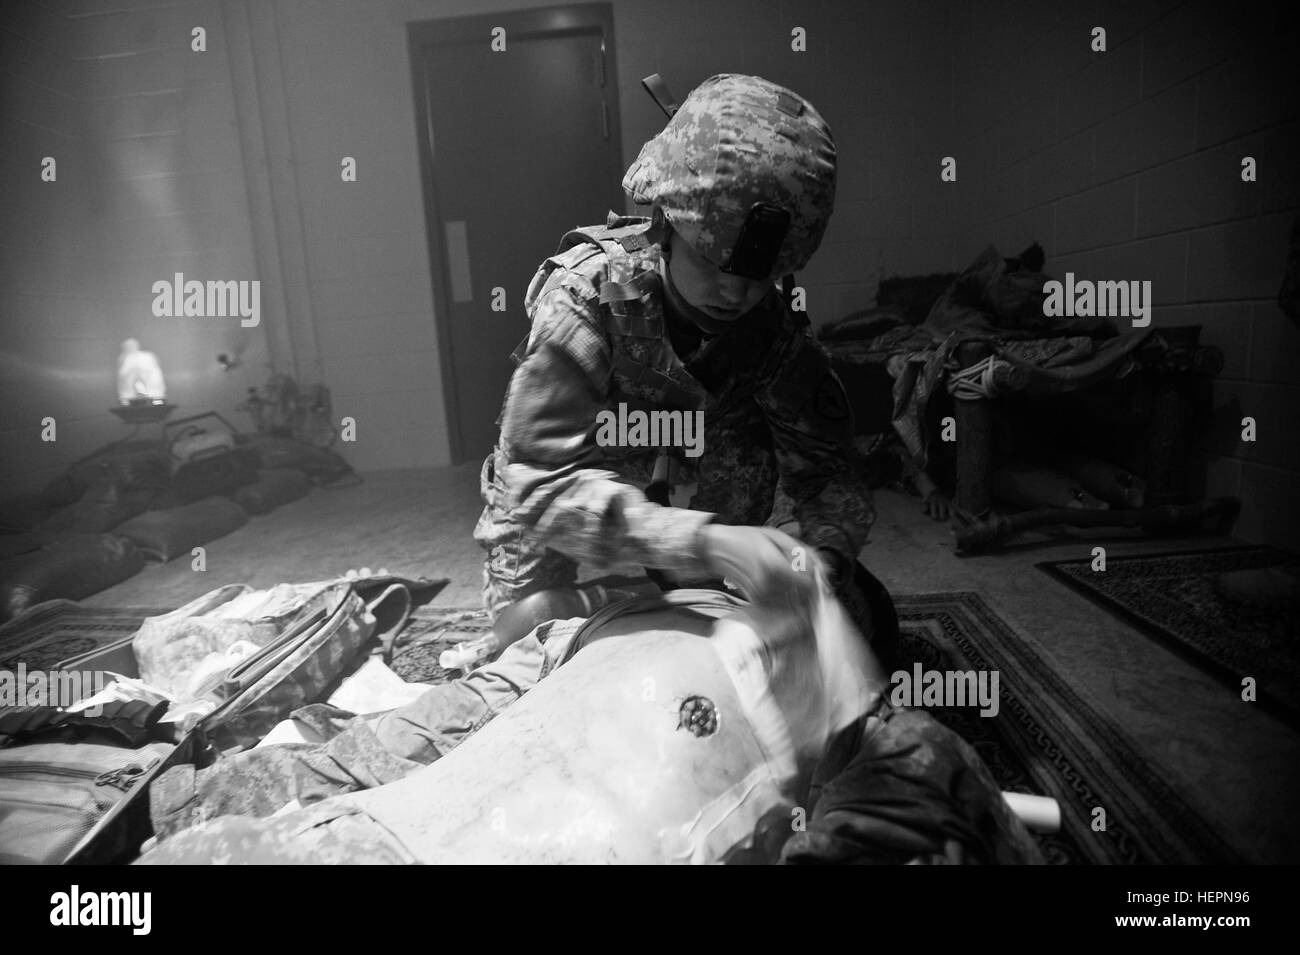 Combat Medic Pfc. Elise McNabb, of Hobart, Ind., part of the Indiana National Guard 738th Area Support Medical Company, - Stock Image